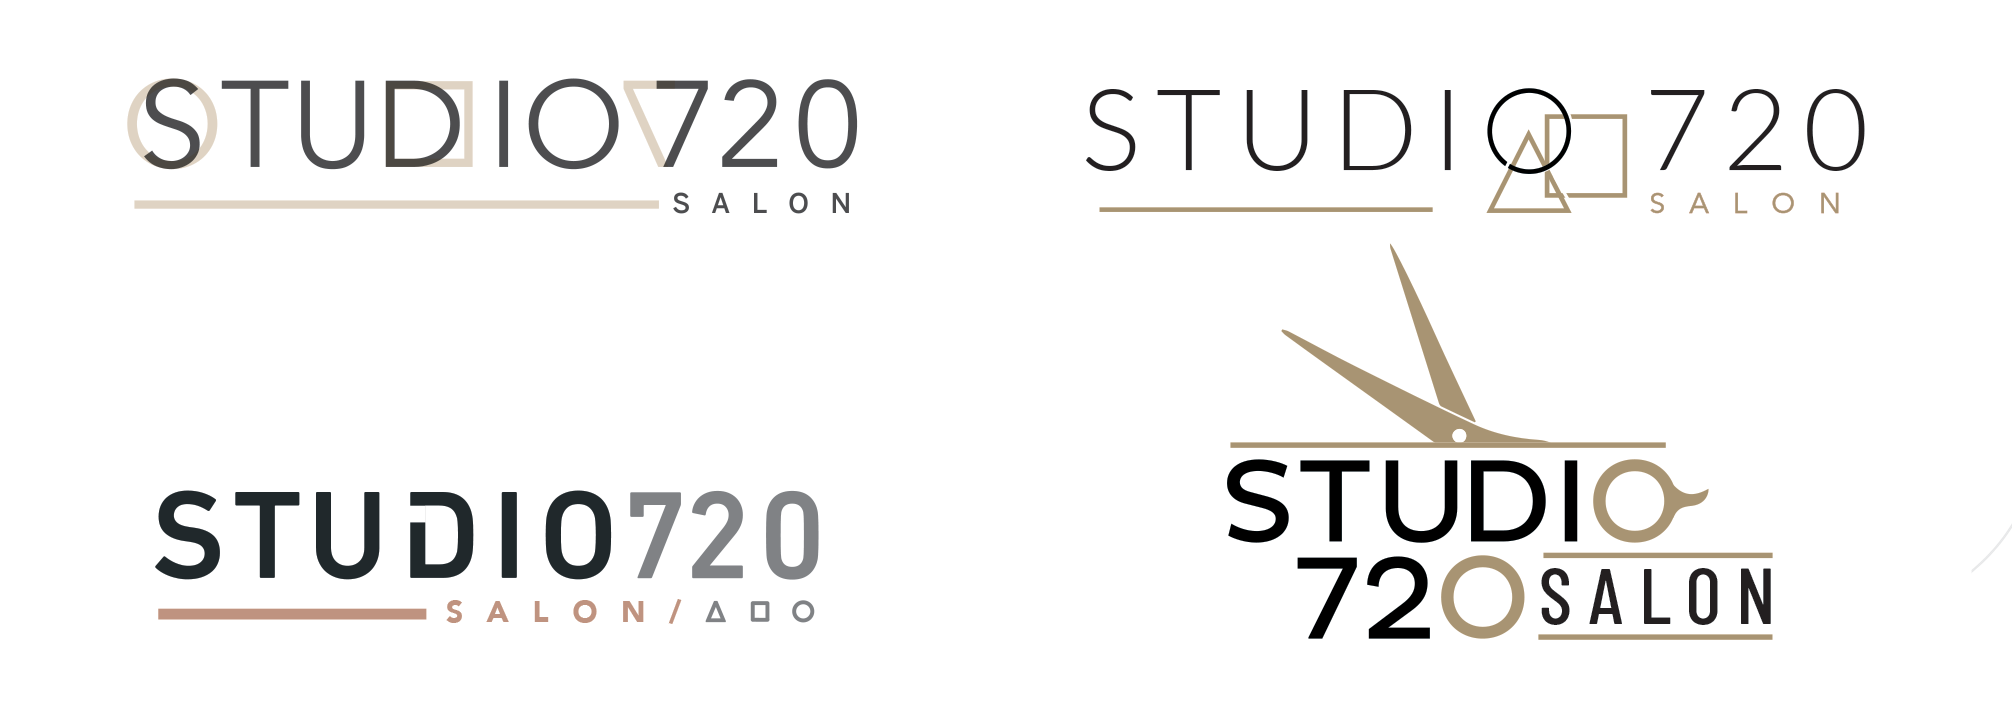 Liza, our in-house graphic designer created four logo options for Studio720 Salon